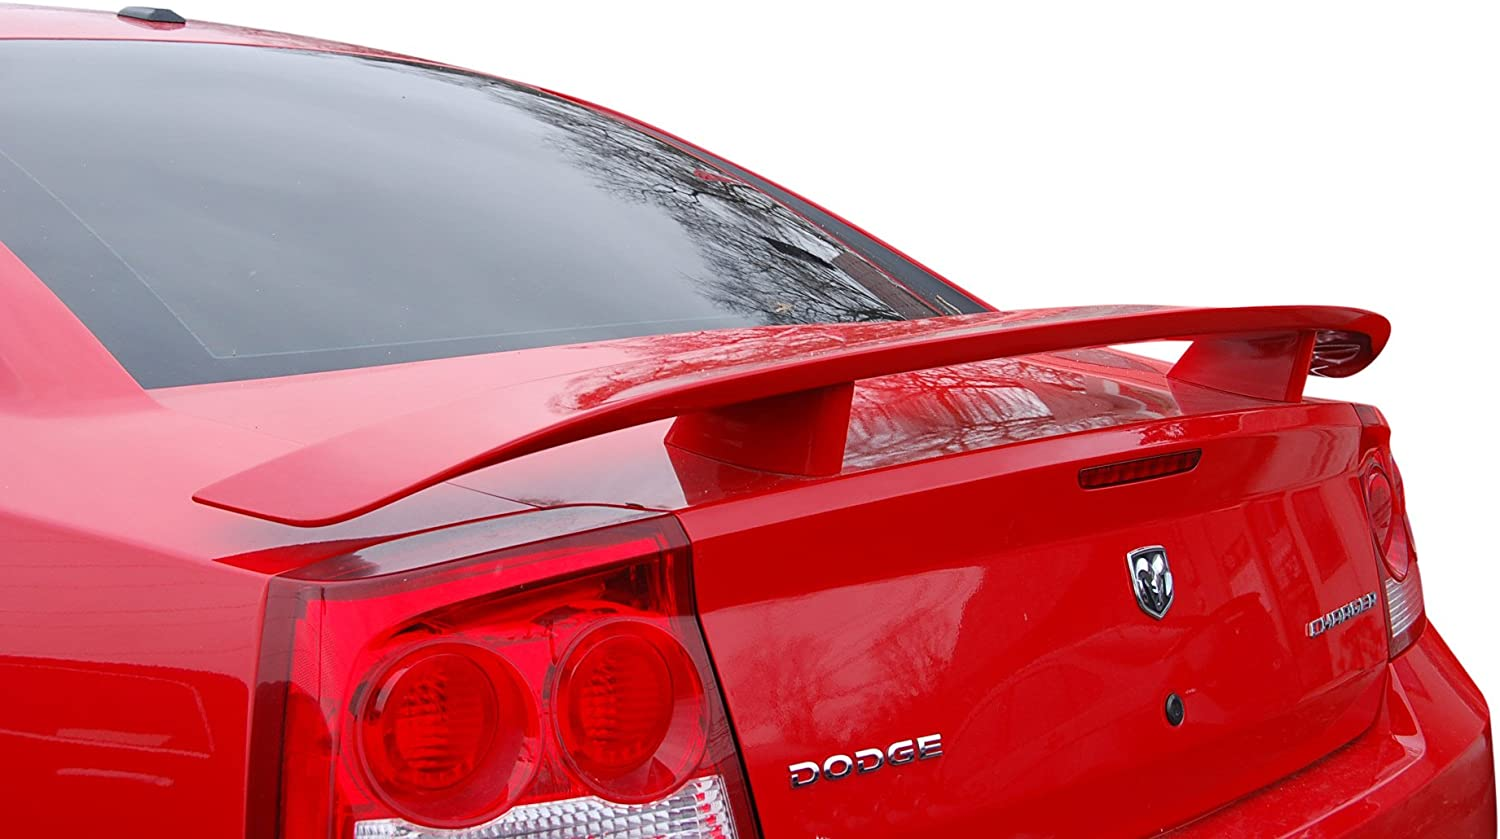 Factory Style Spoiler for the Charger Painted in the Factory Paint Code of Your Choice 250 Silver Steel Metallic PA4